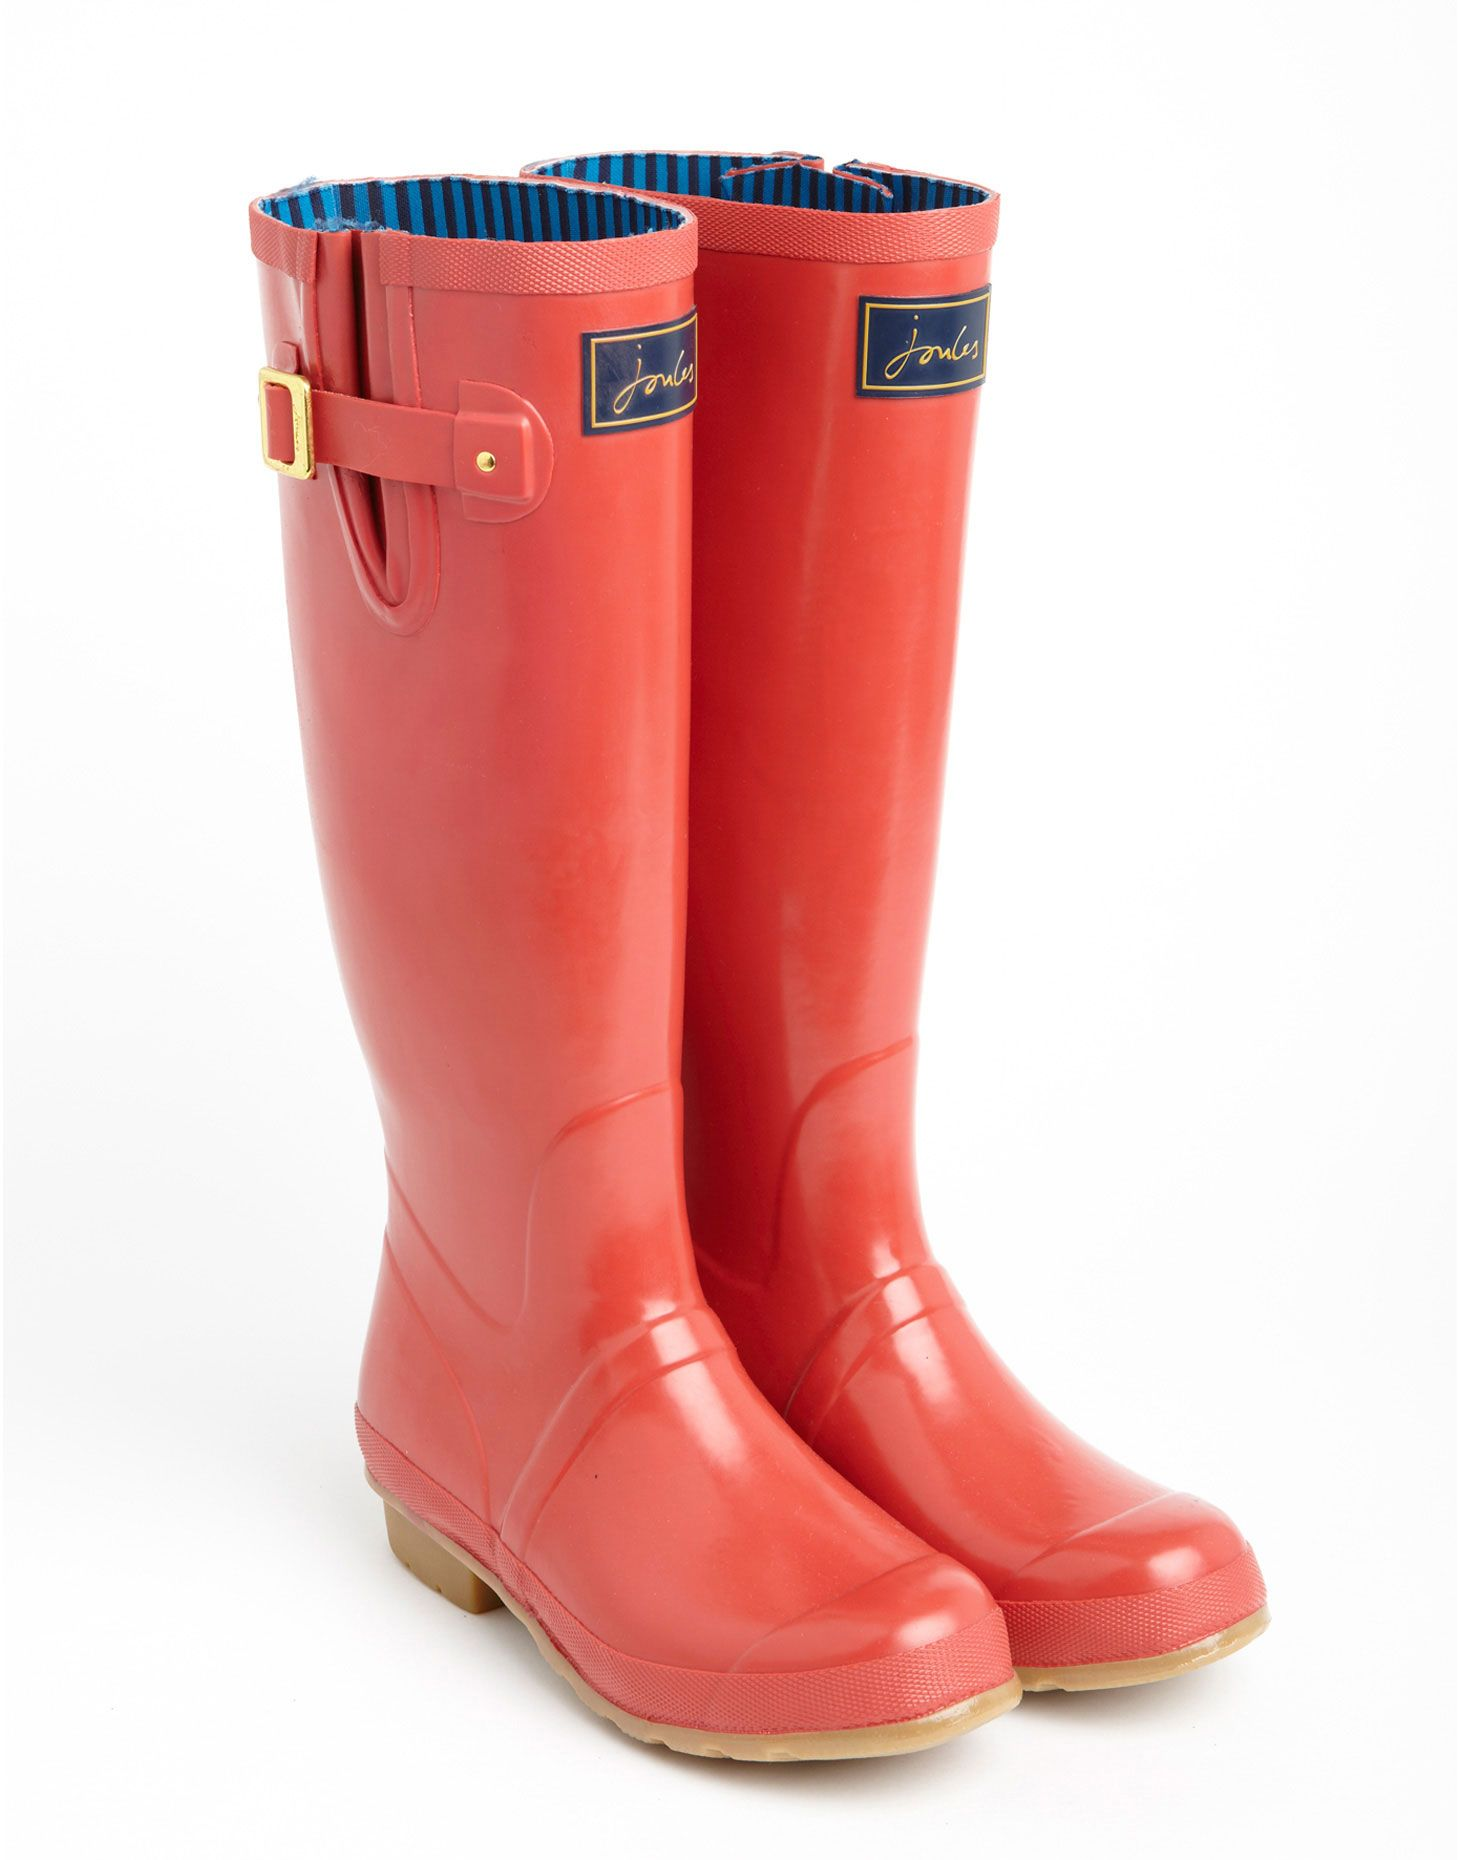 Insulated Rain Boots Womens - Cr Boot